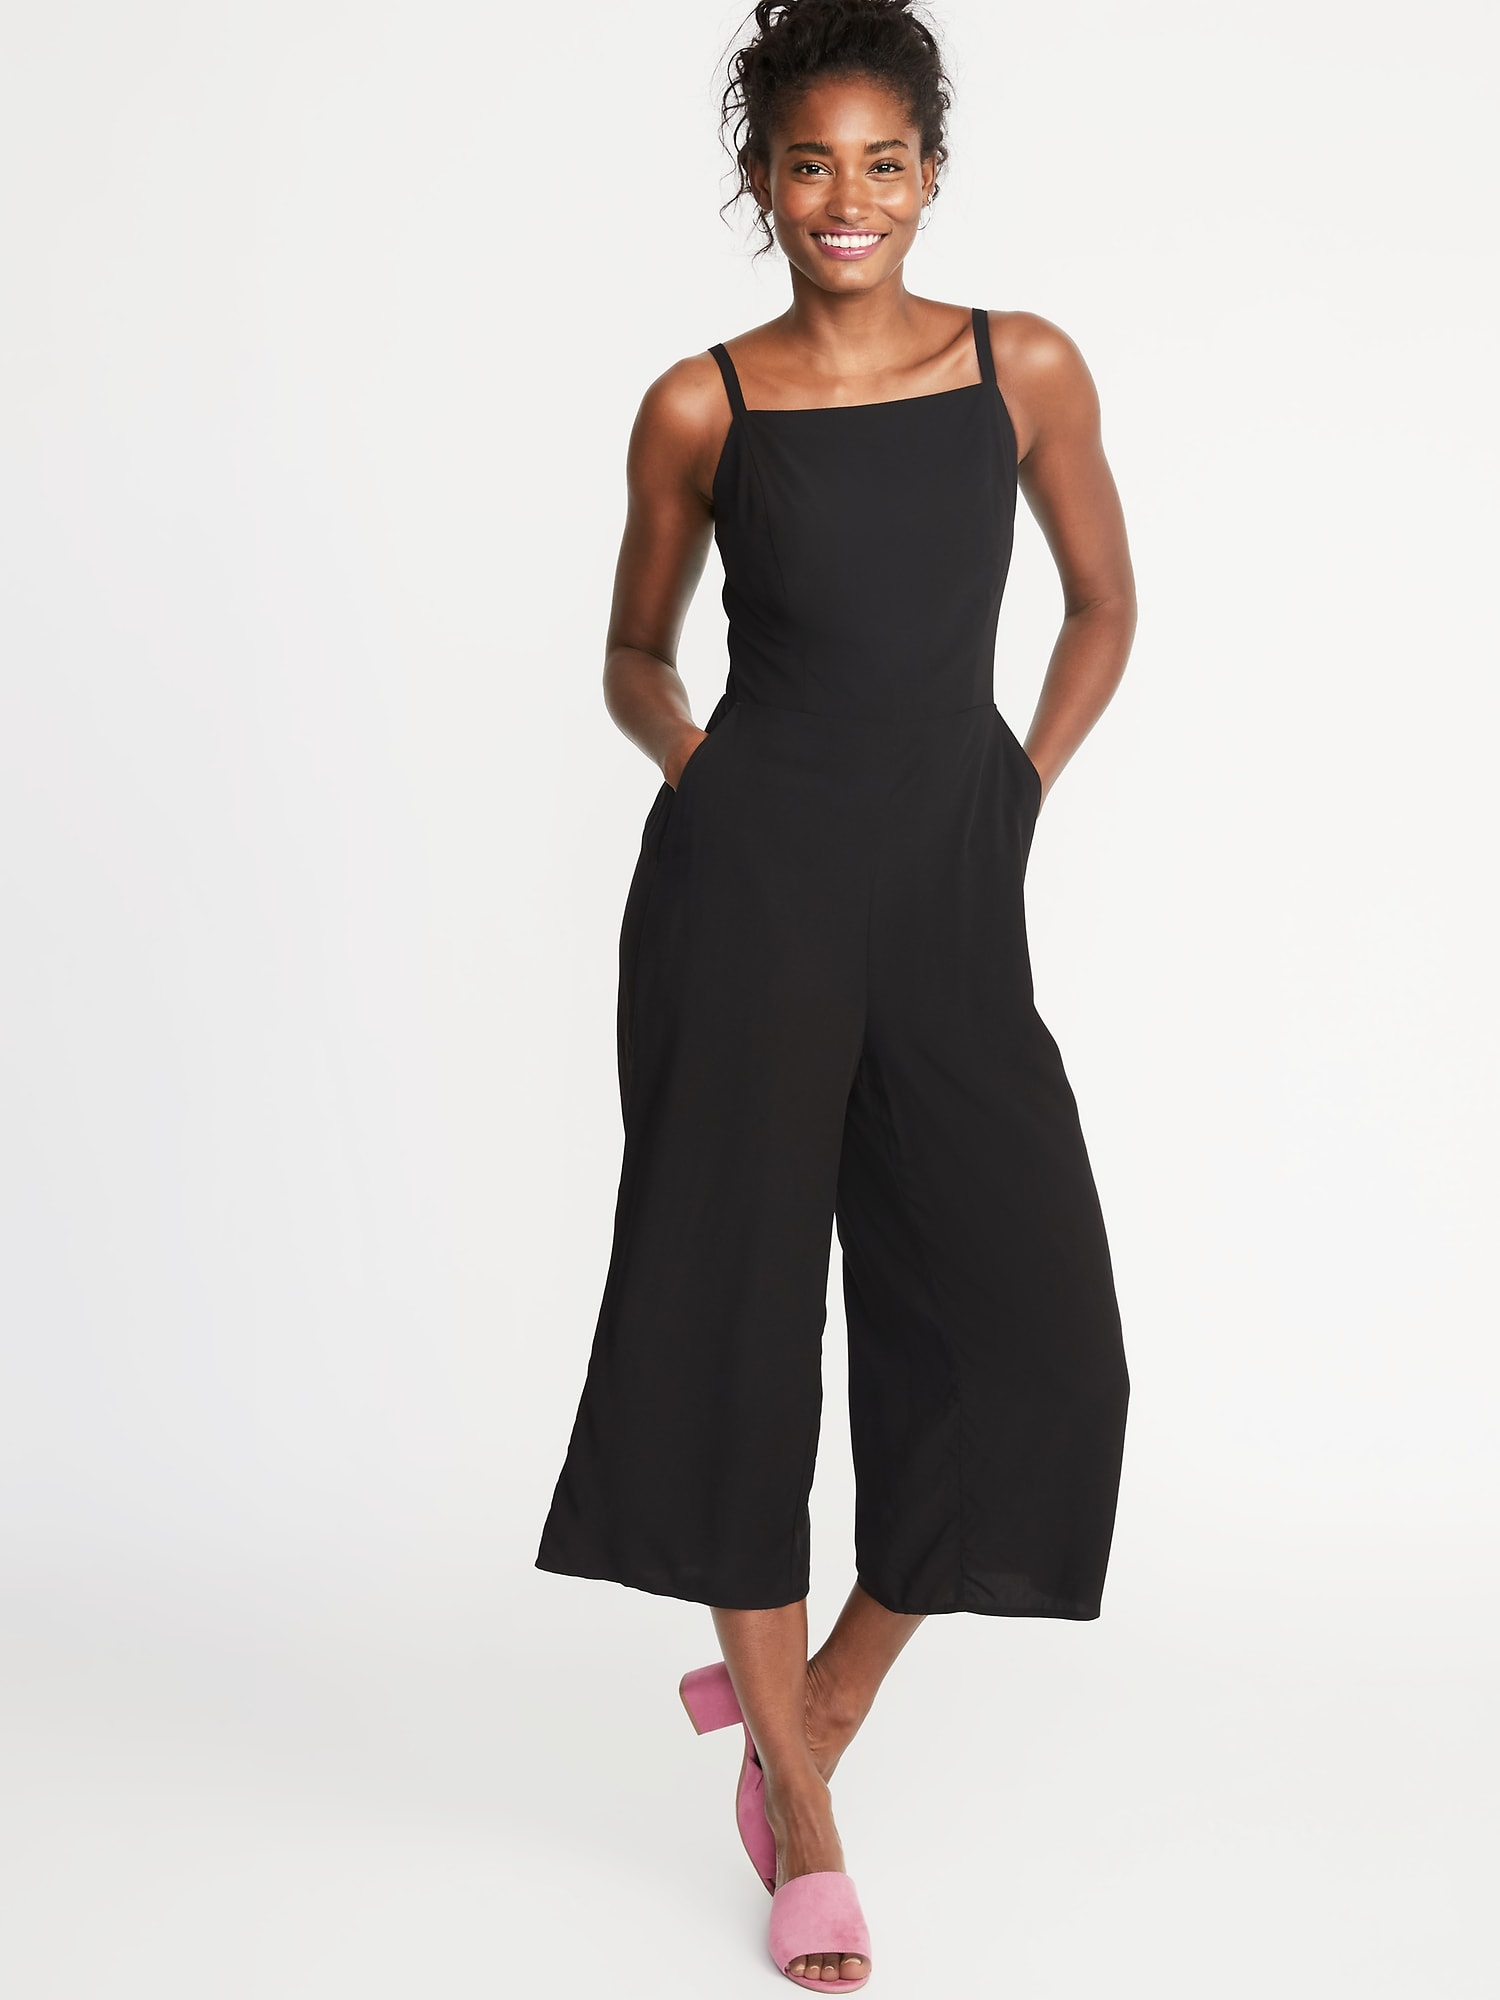 baf3ccf7fd8 Square-Neck Cami Jumpsuit for Women | Old Navy